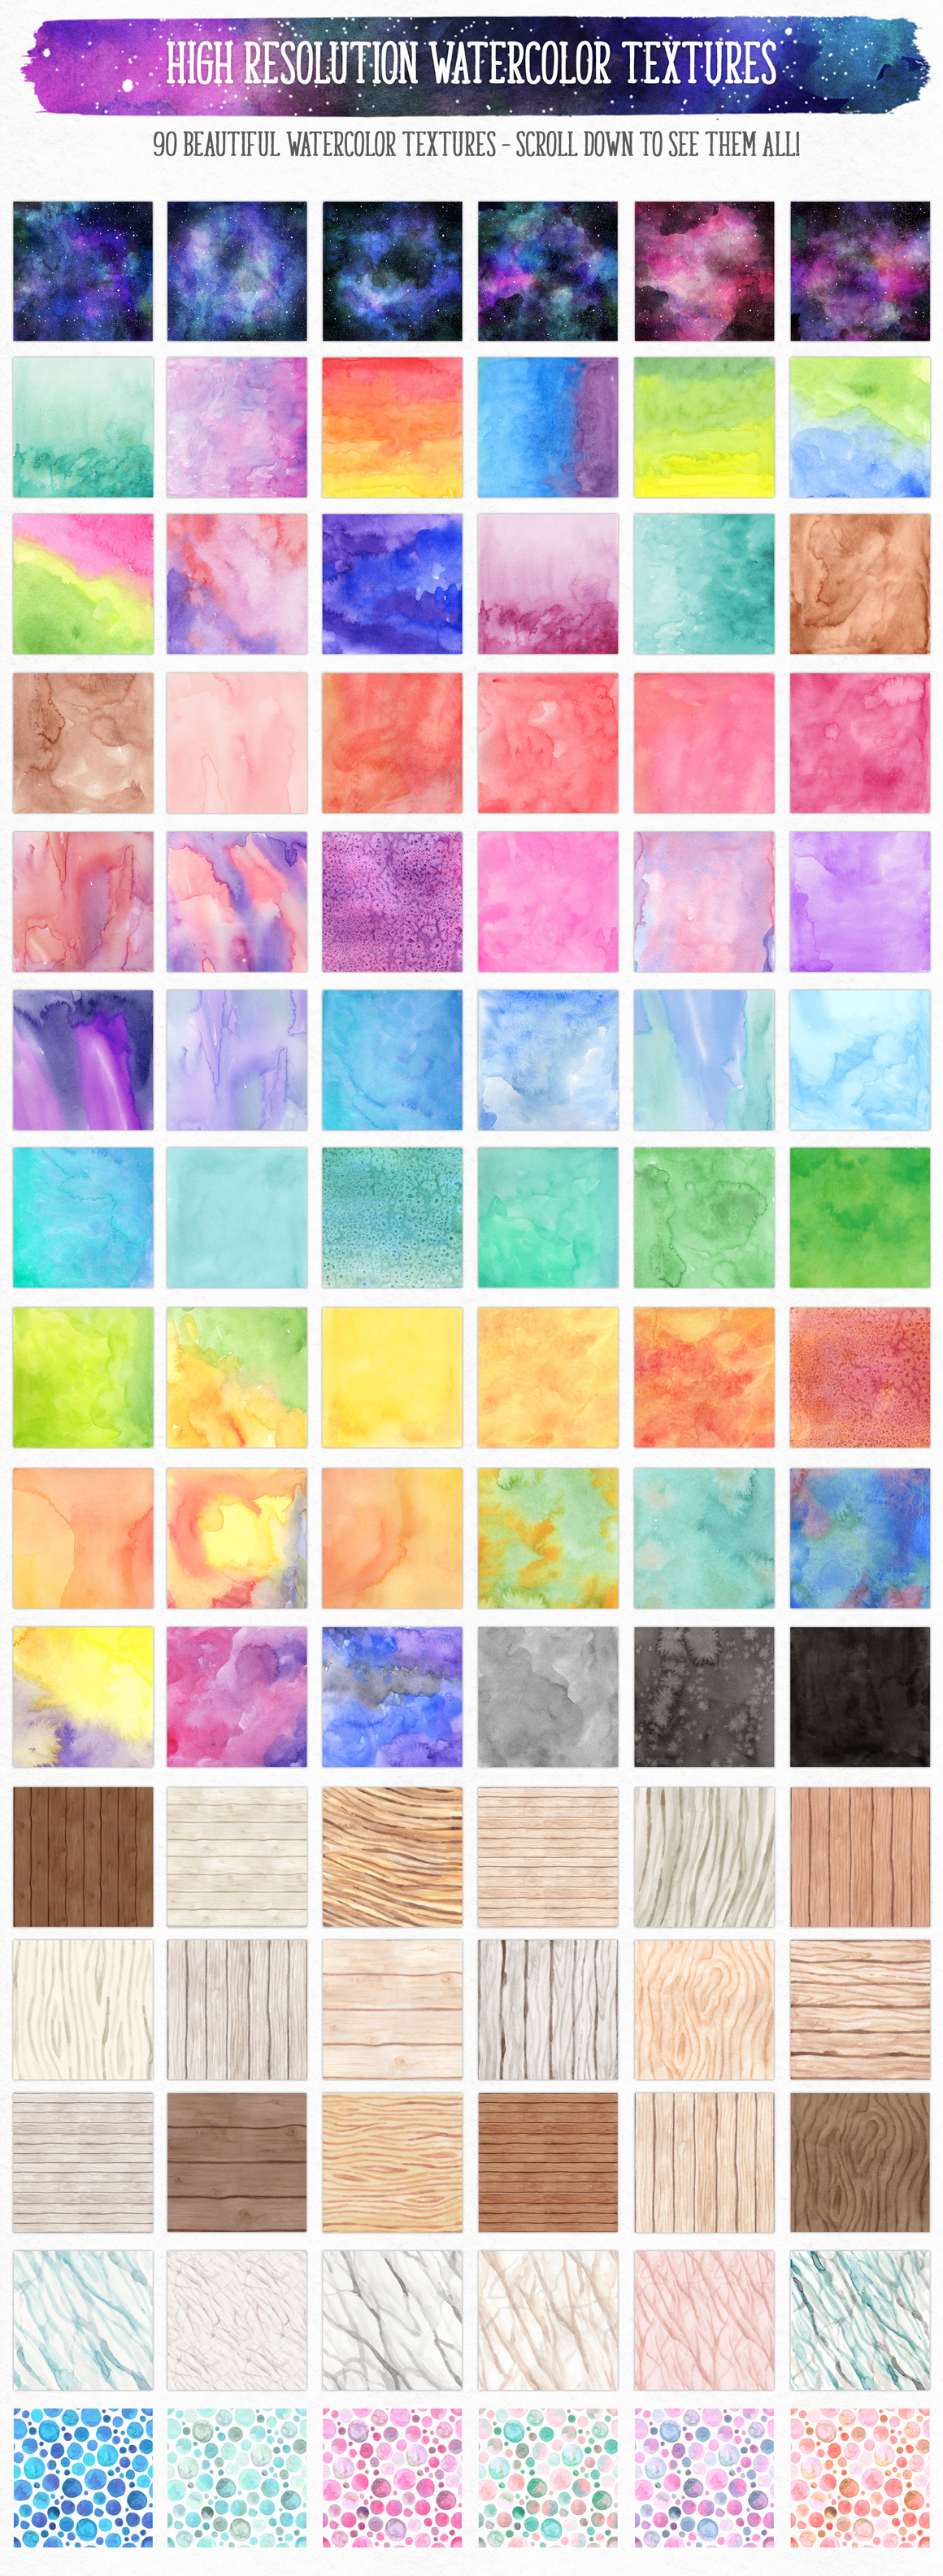 New Watercolor Textures and Graphics Bundle example image 2